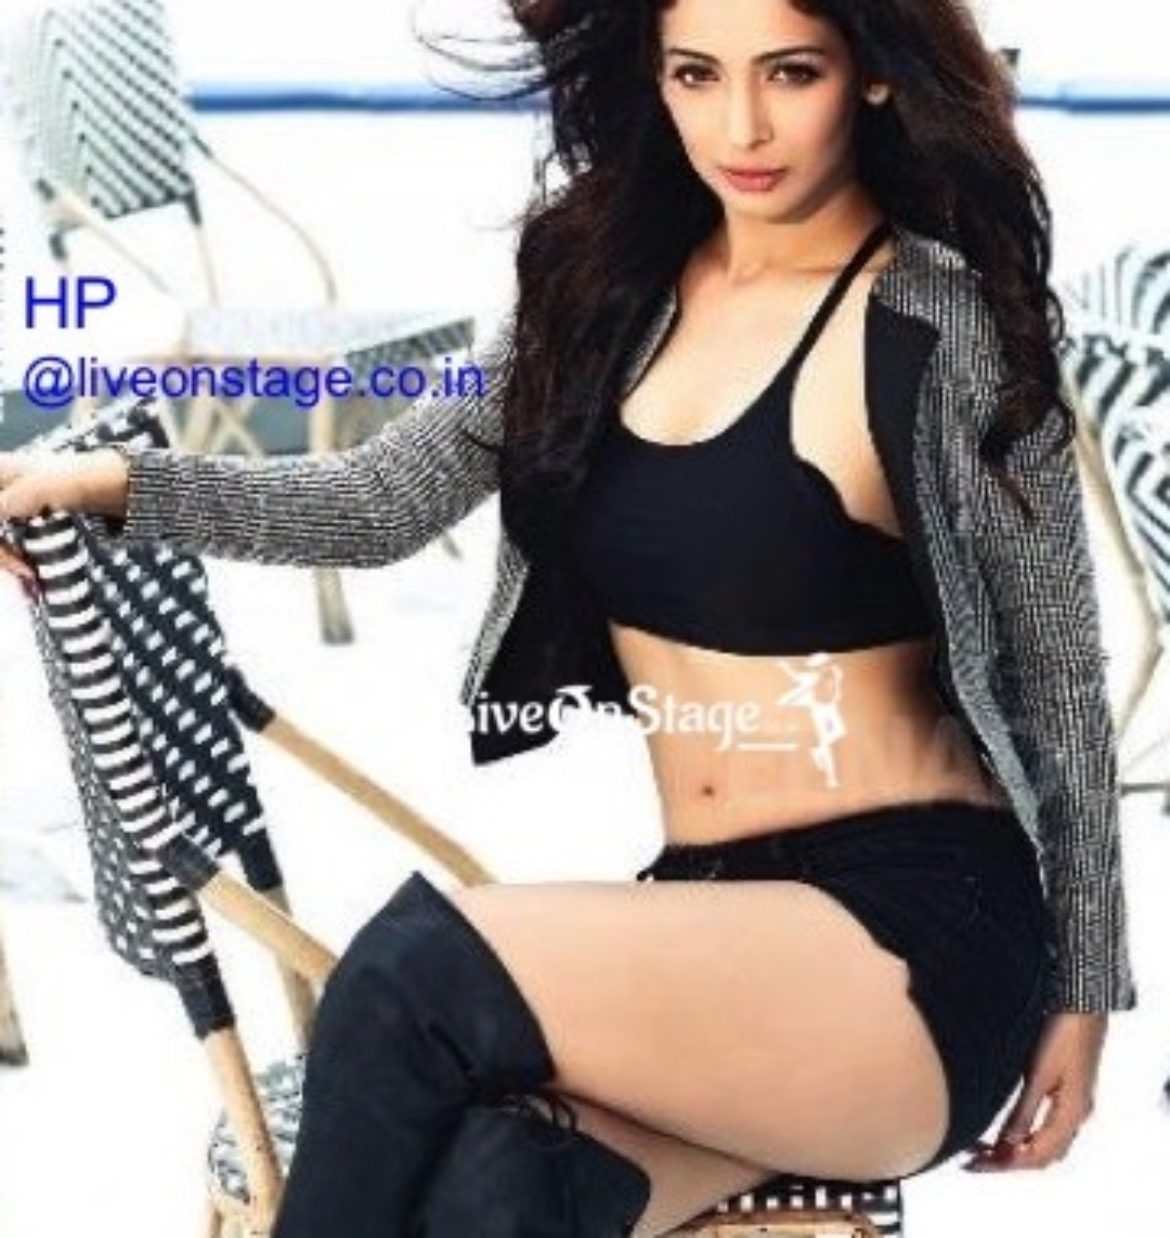 Item Girl, Pole Dancer, Bollywood Dancer, Solo Dancer, Stage Show, Weddings, Corporate Events, Live On Stage, Live On Stage Weddings,